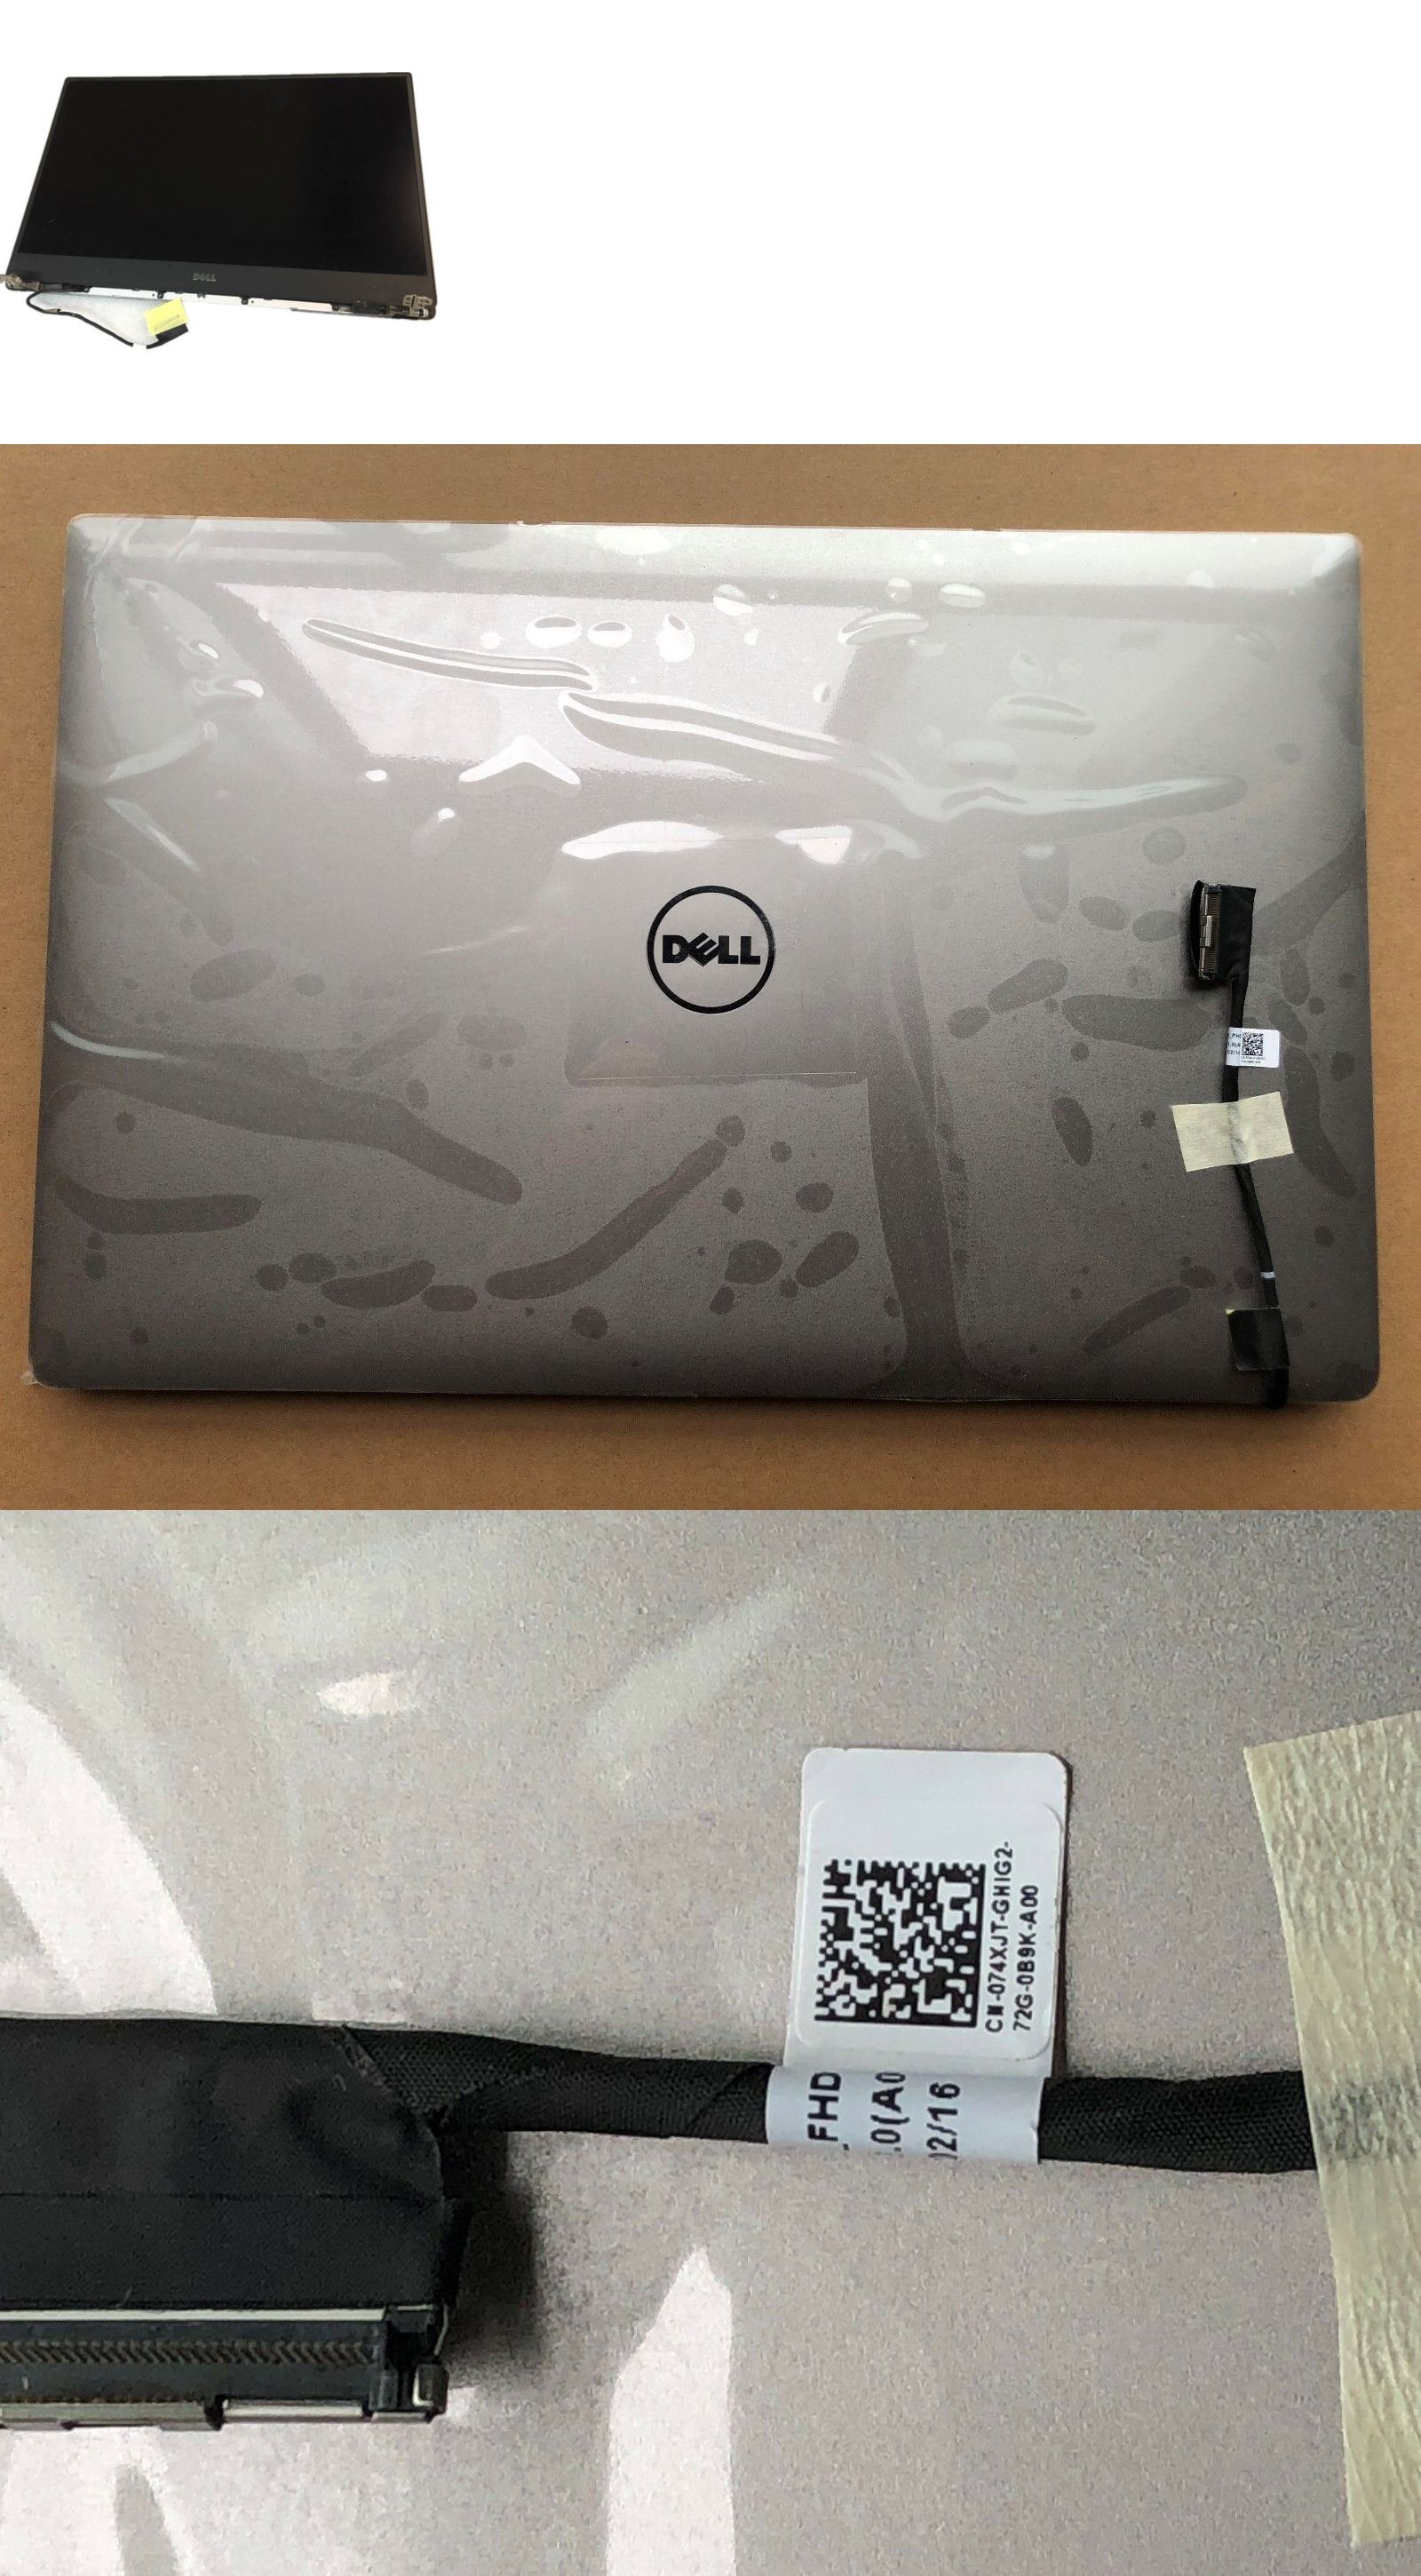 Laptop Screens and LCD Panels 31569: N98cy Dell Xps 15 9550